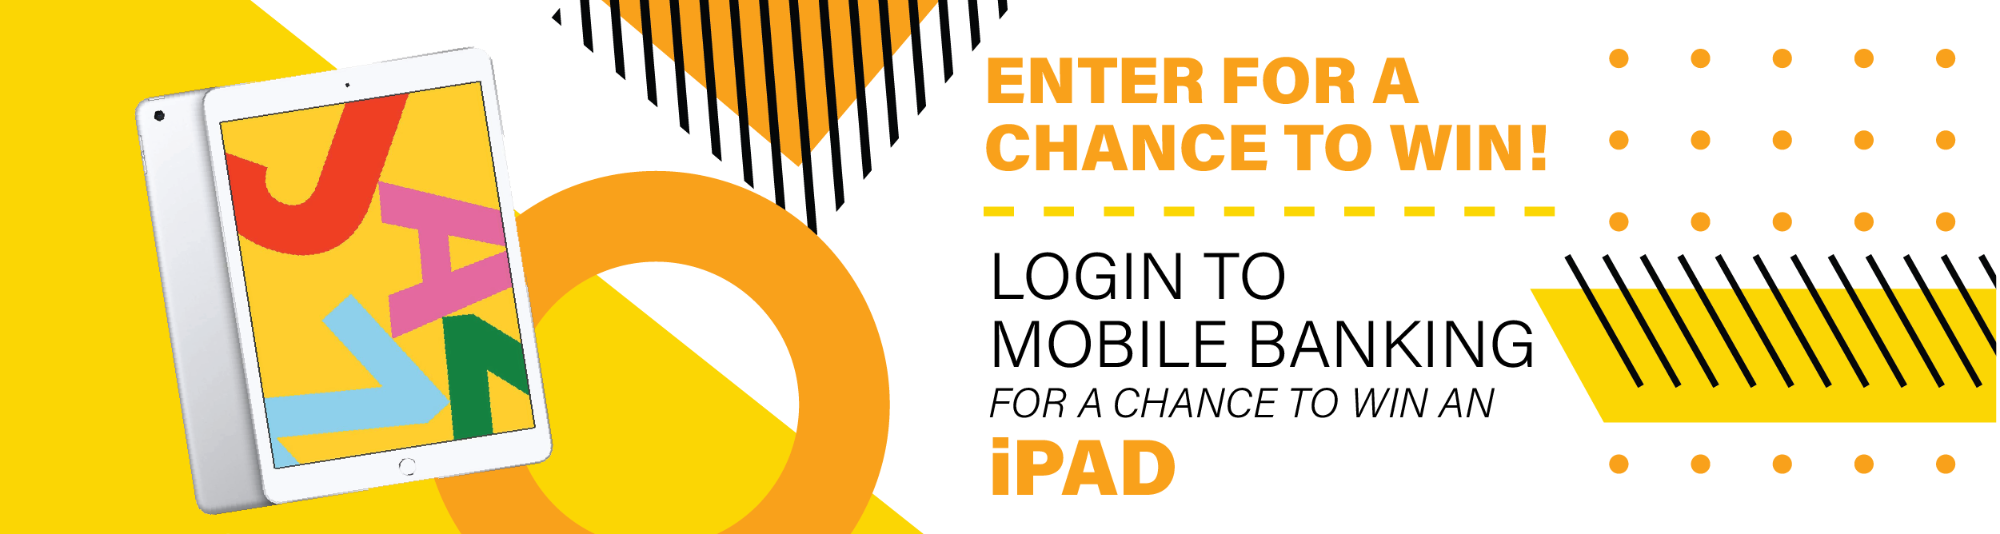 Enter for a chance to win! Login to mobile banking for a chance to win an iPad.